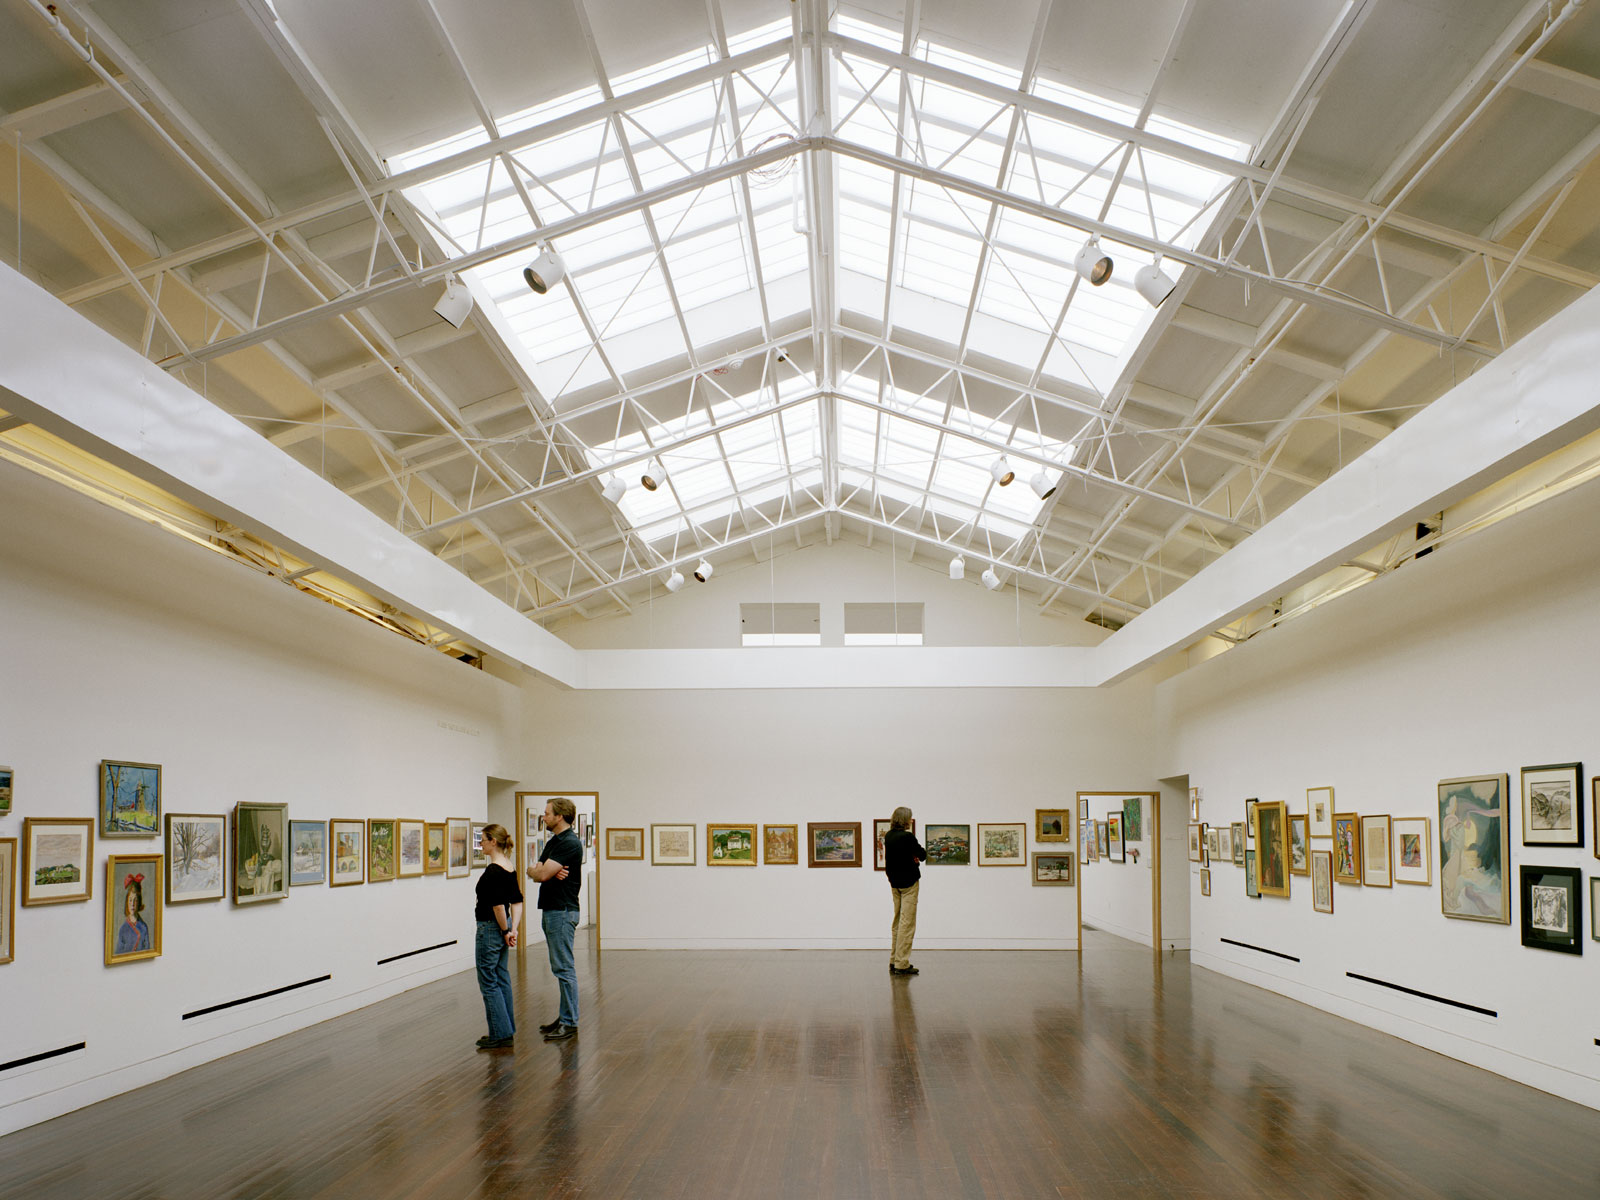 The Hofmann Gallery at PAAM